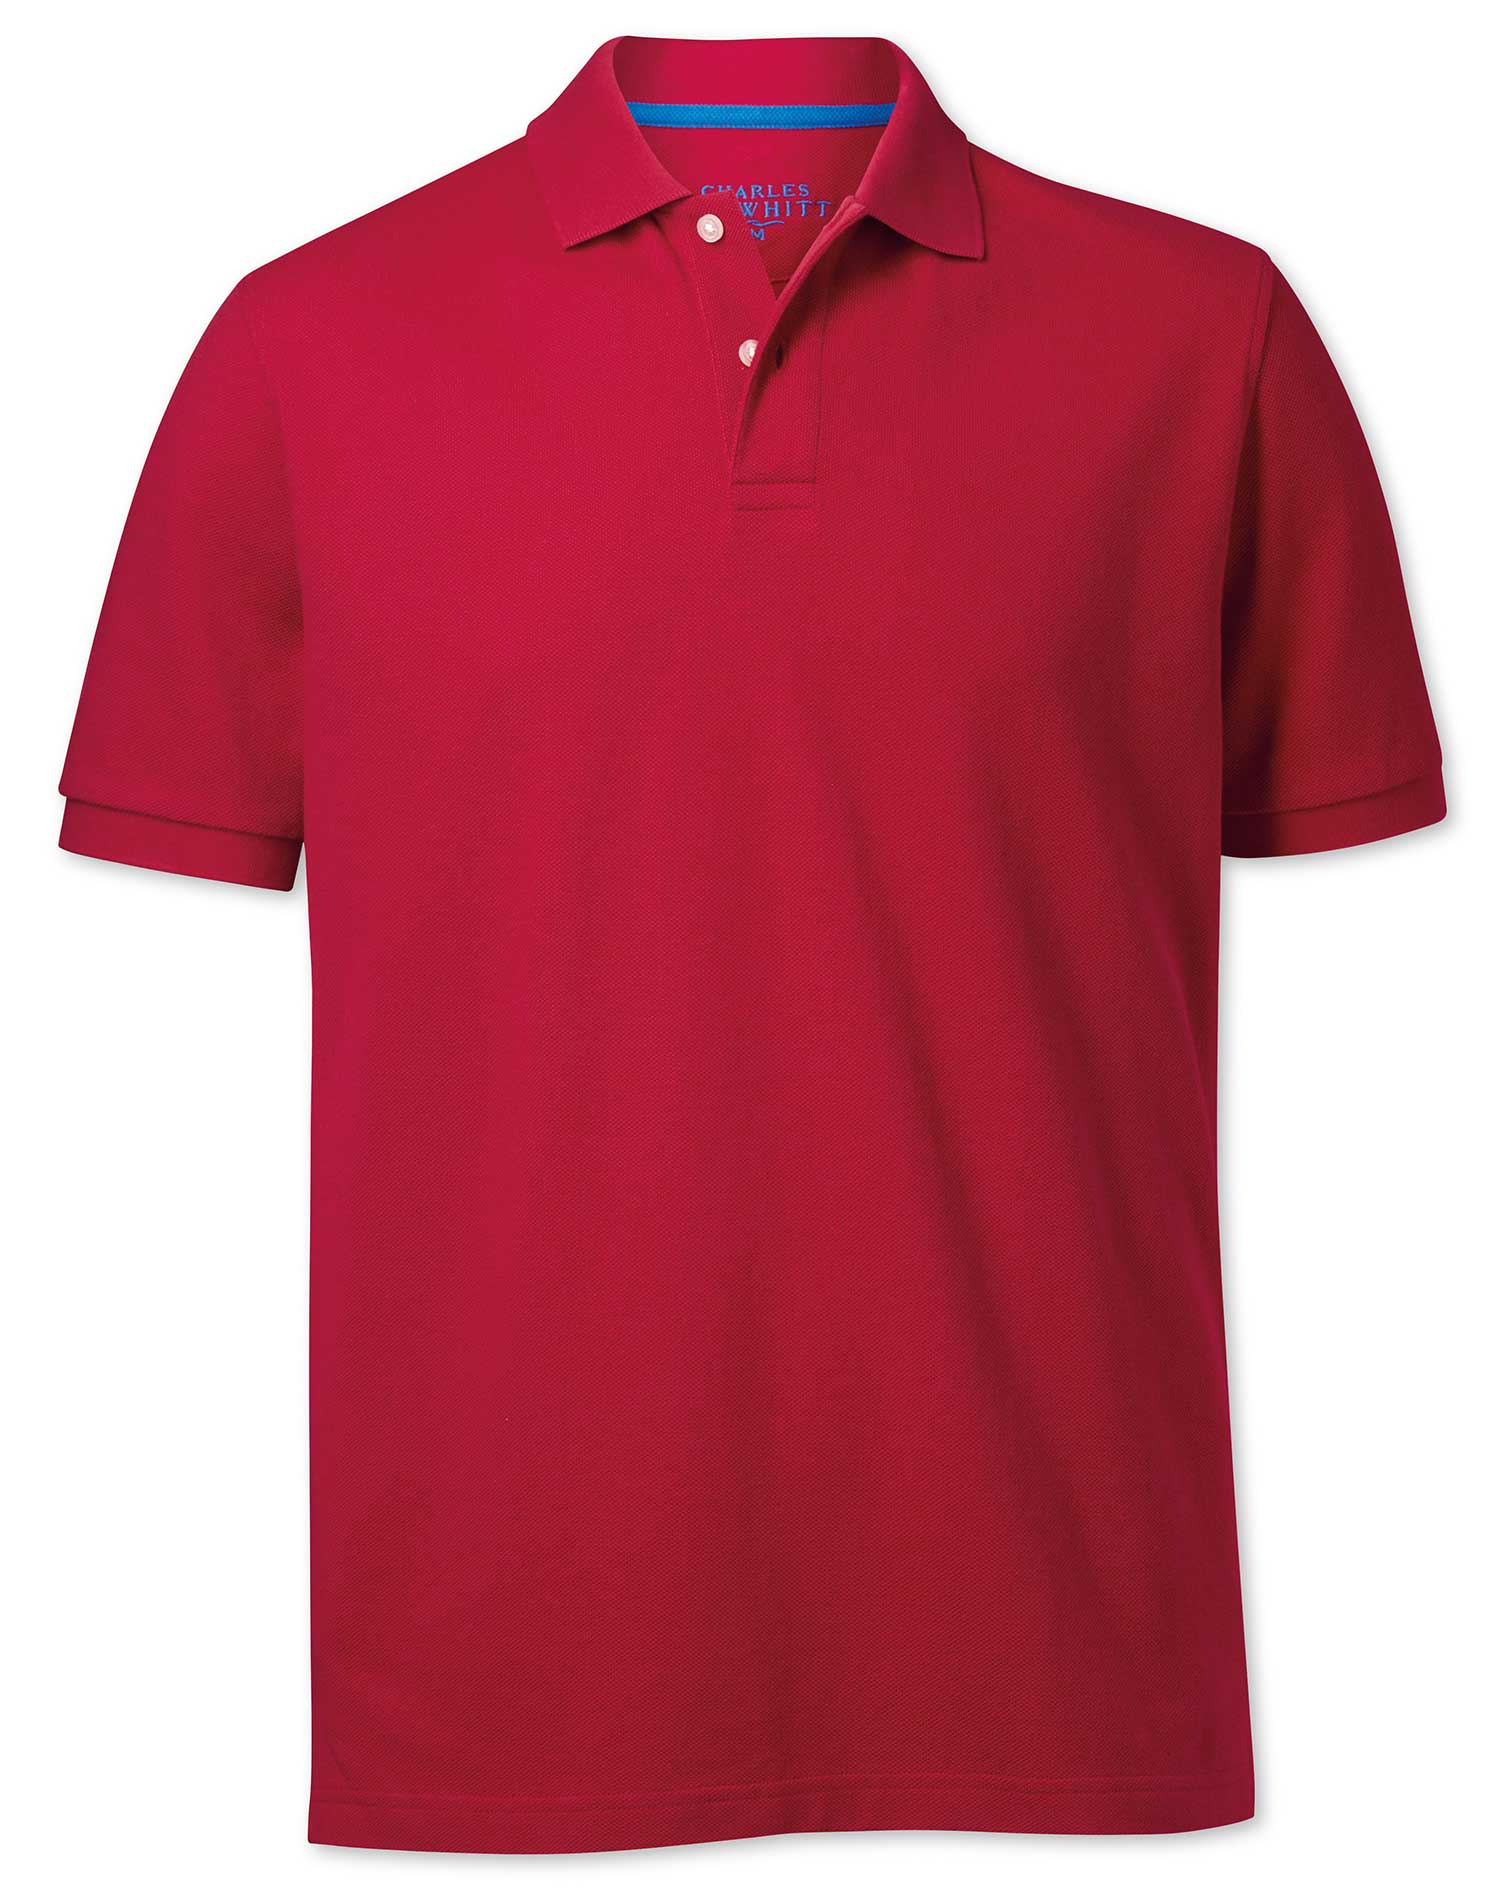 Red Pique Cotton Polo Size Medium by Charles Tyrwhitt